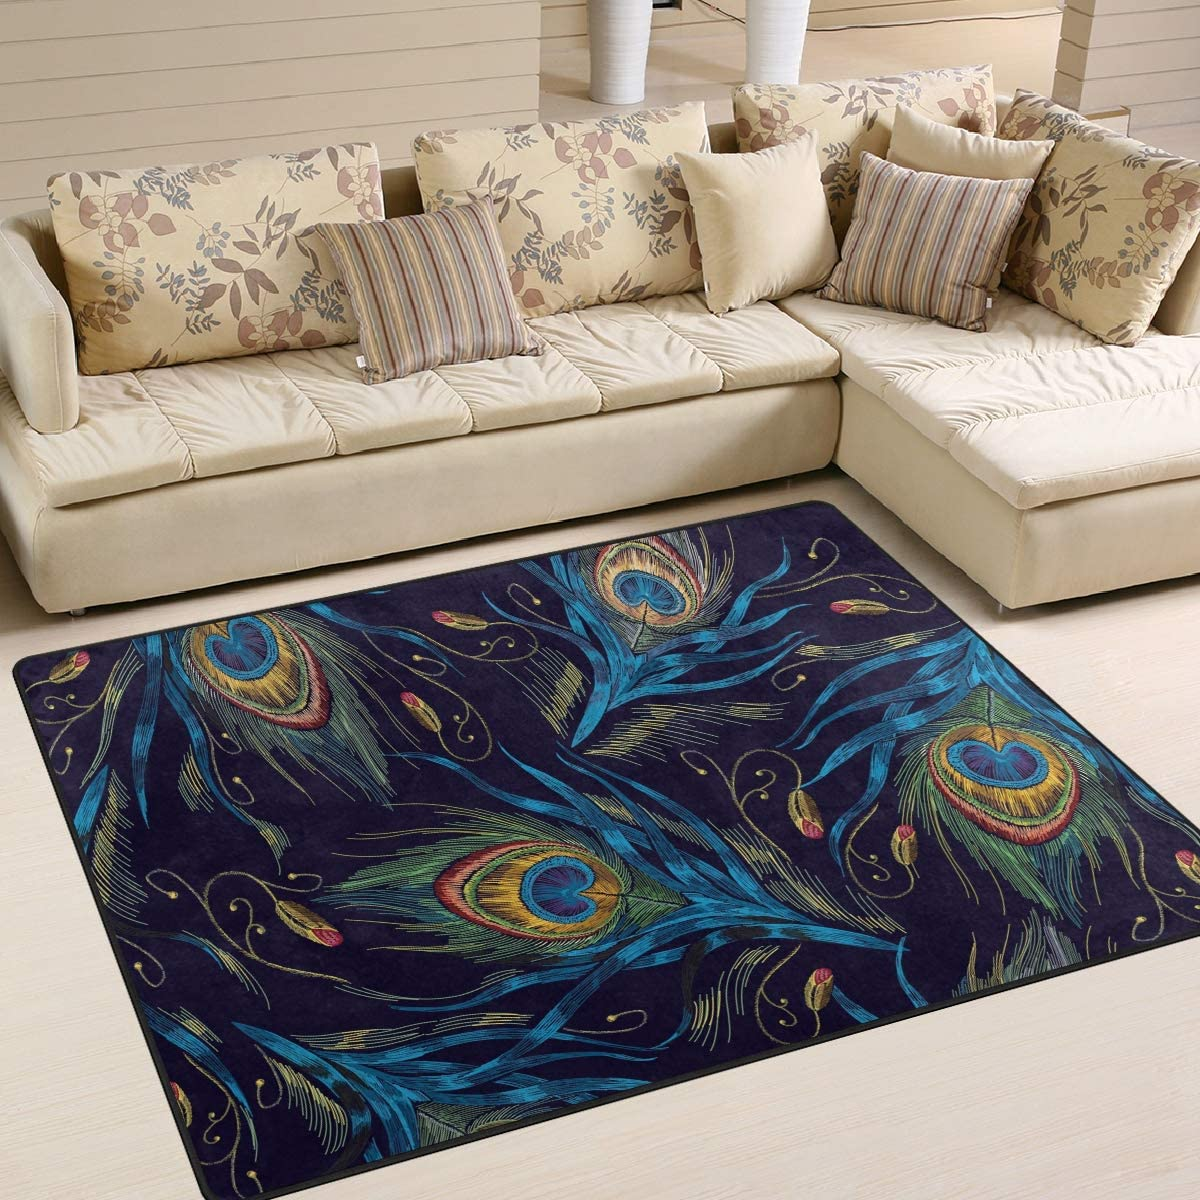 ALAZA Fashion Peacock Feather Artwork Area Rug Rugs for Living Room Bedroom 5 3 x4